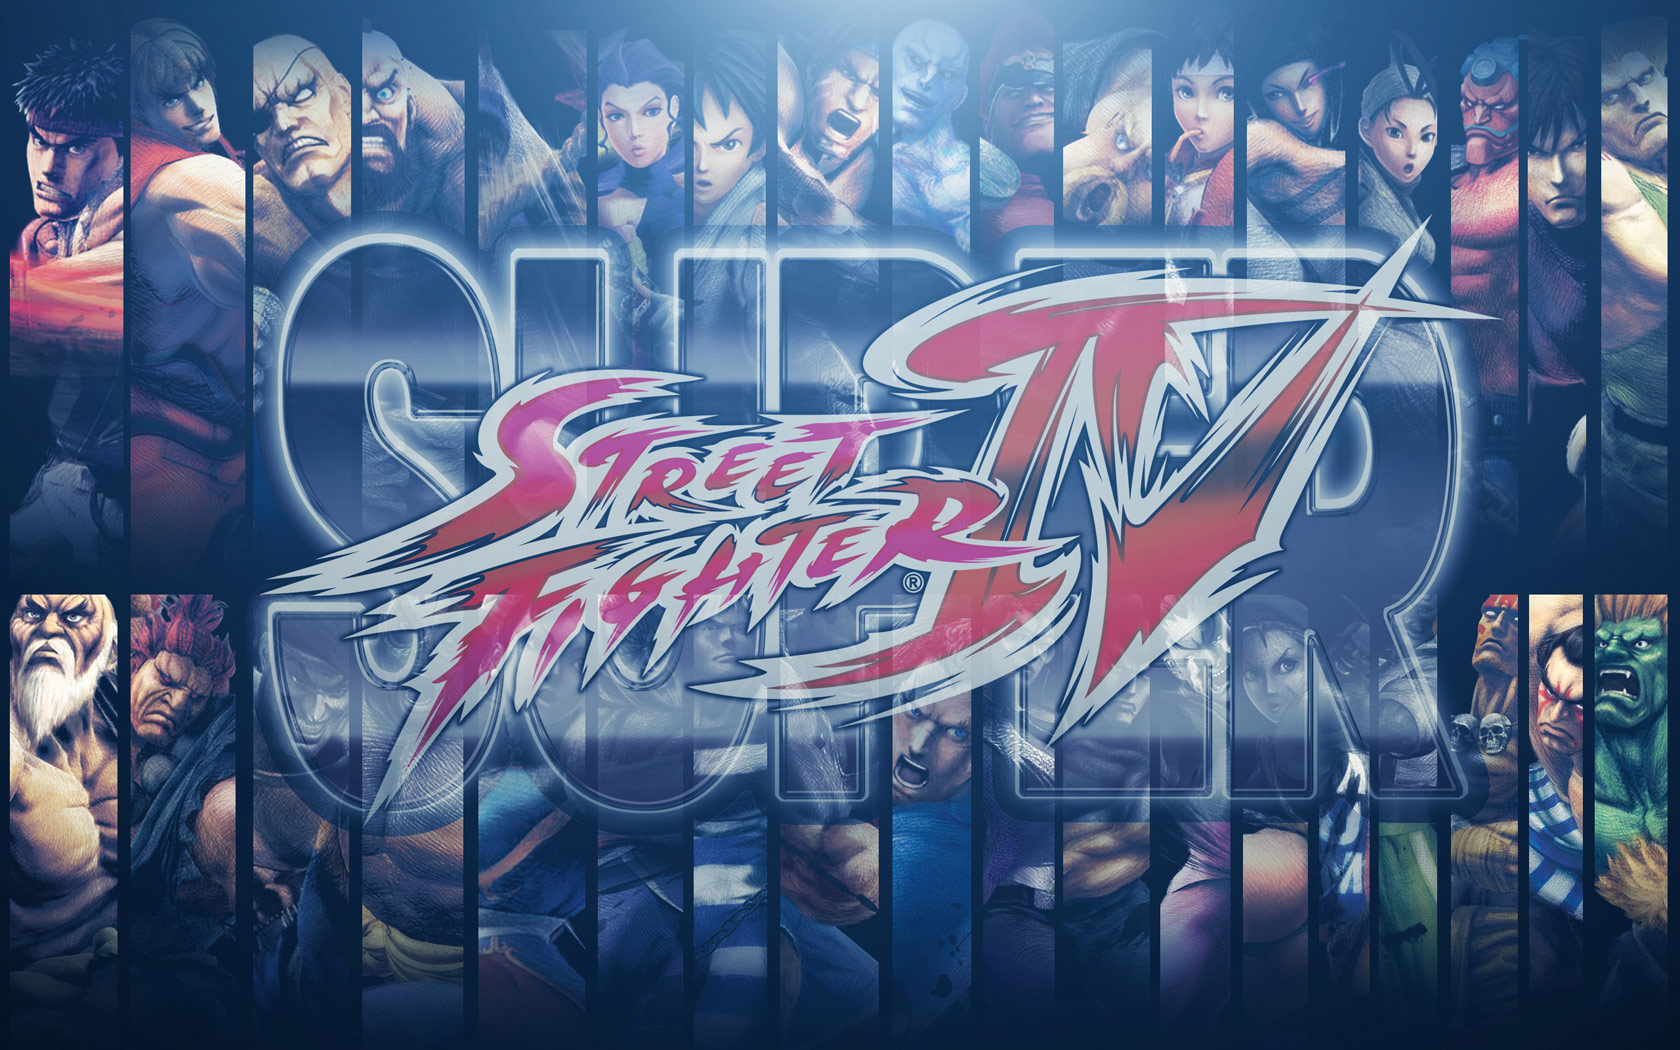 Super Street Fighter 4 wallpaper collage by BossLogic